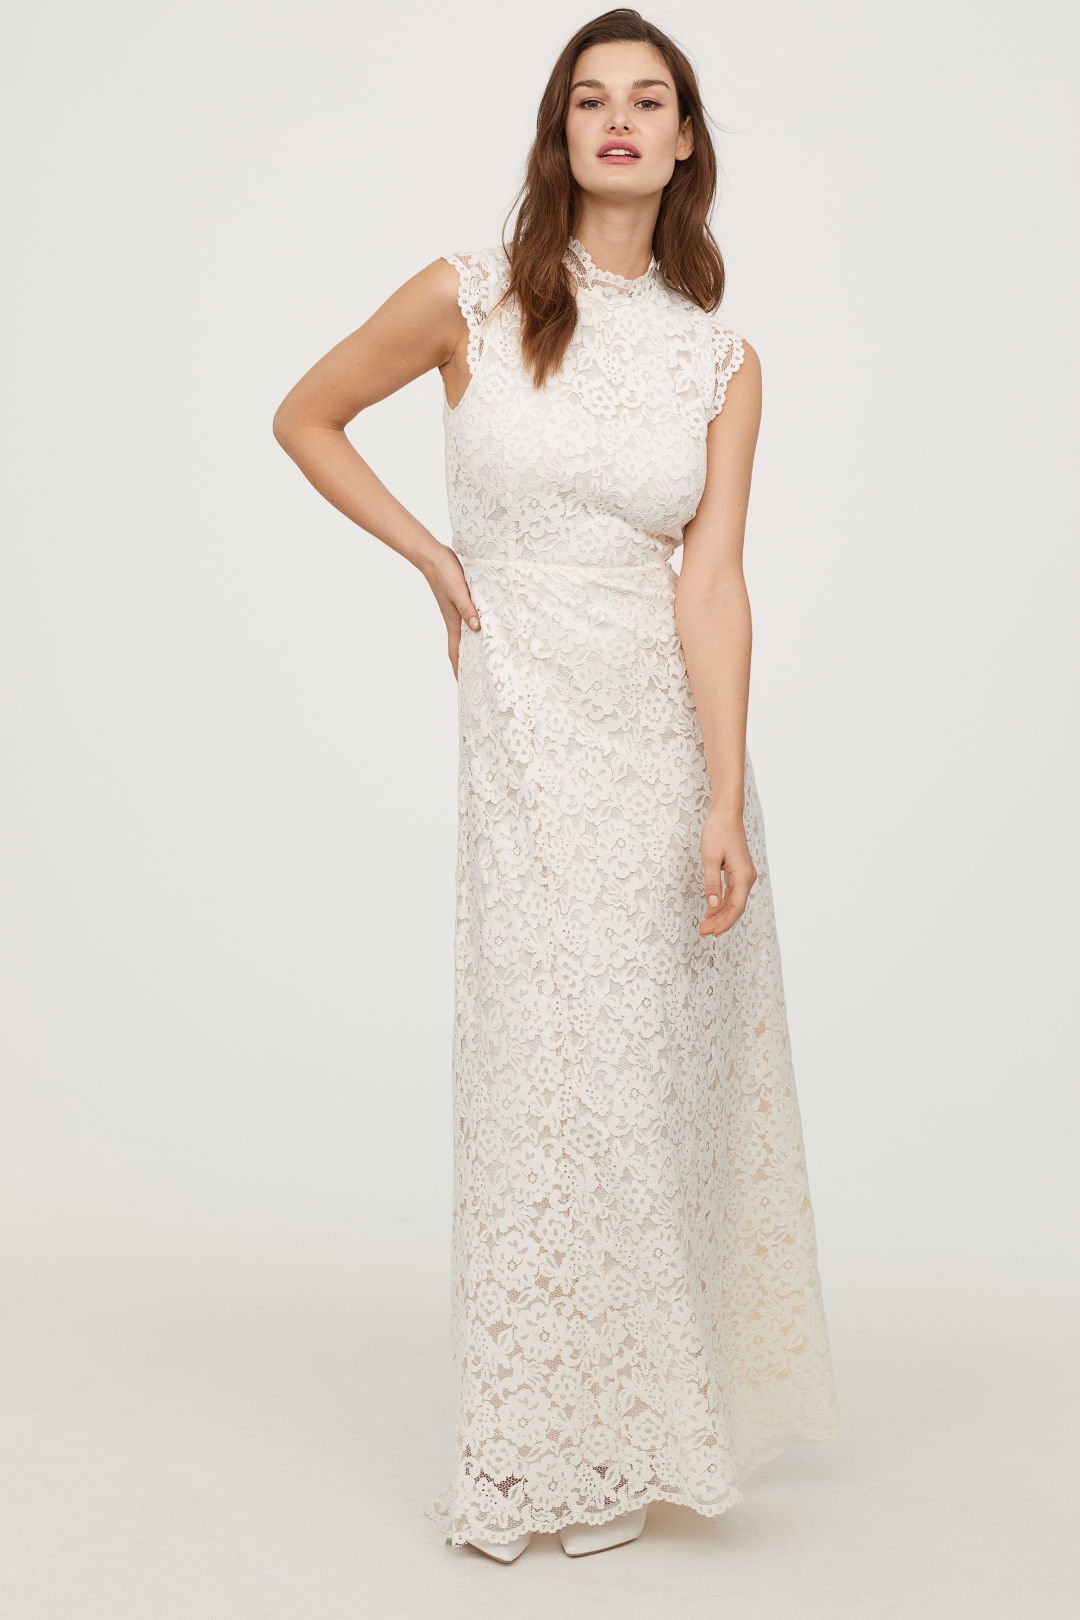 5 Retailers You Didn\'t Know Made Affordable Wedding Dresses · Betches